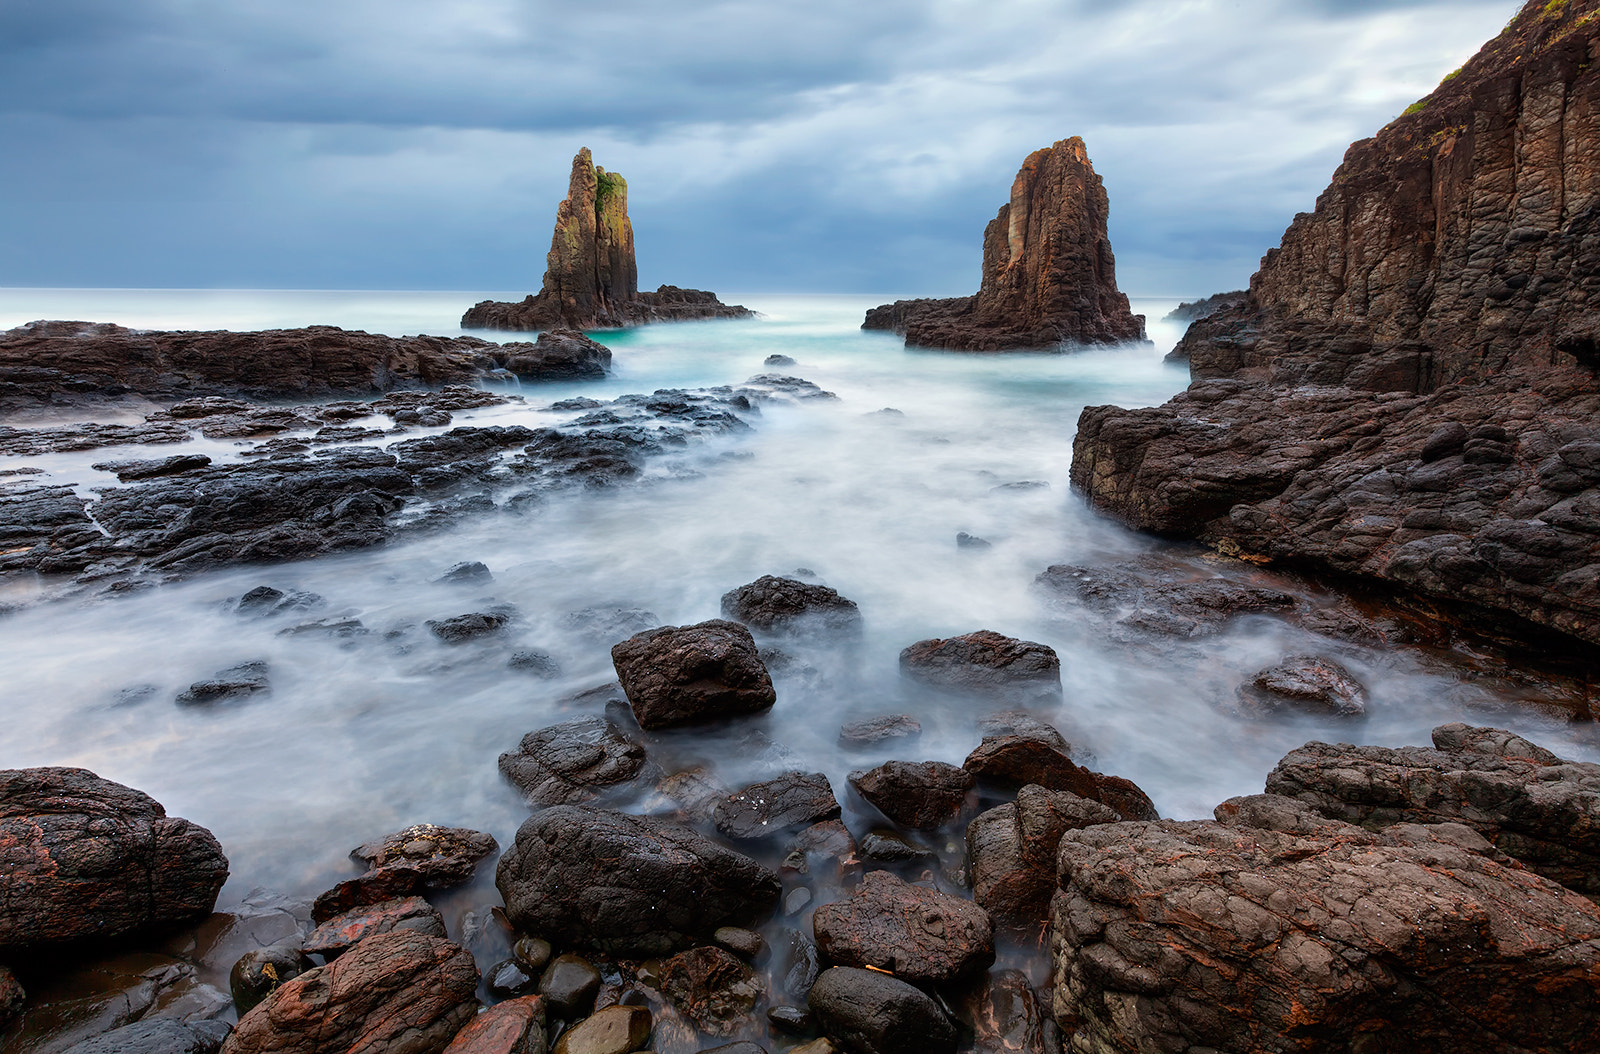 Photograph Stand out by Goff Kitsawad on 500px